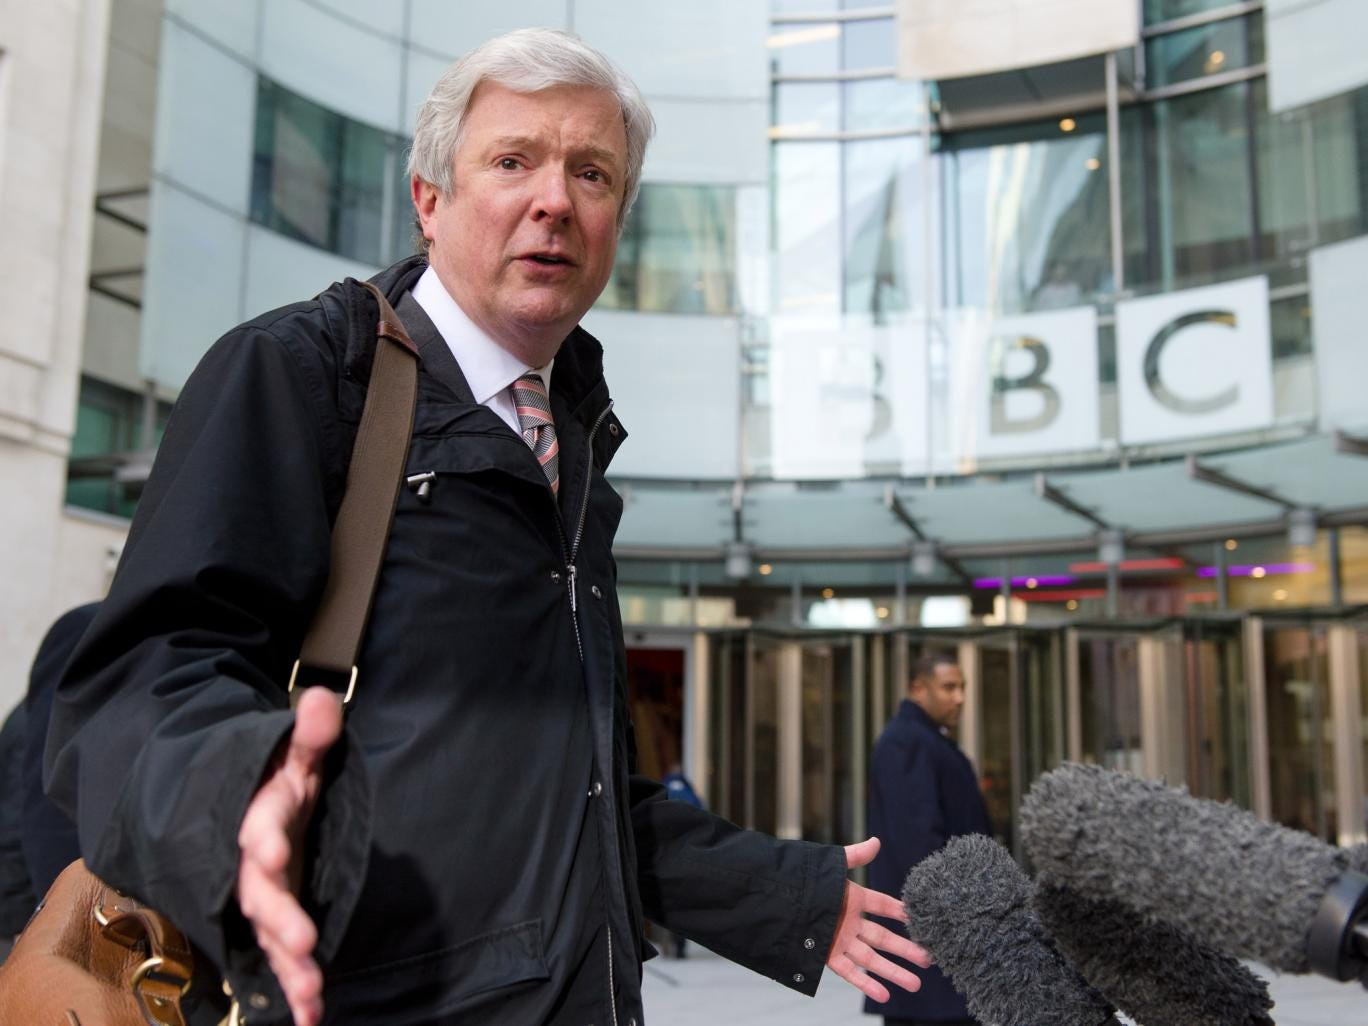 Tony Hall, Director General of the BBC, pictured outside New Broadcasting House last year